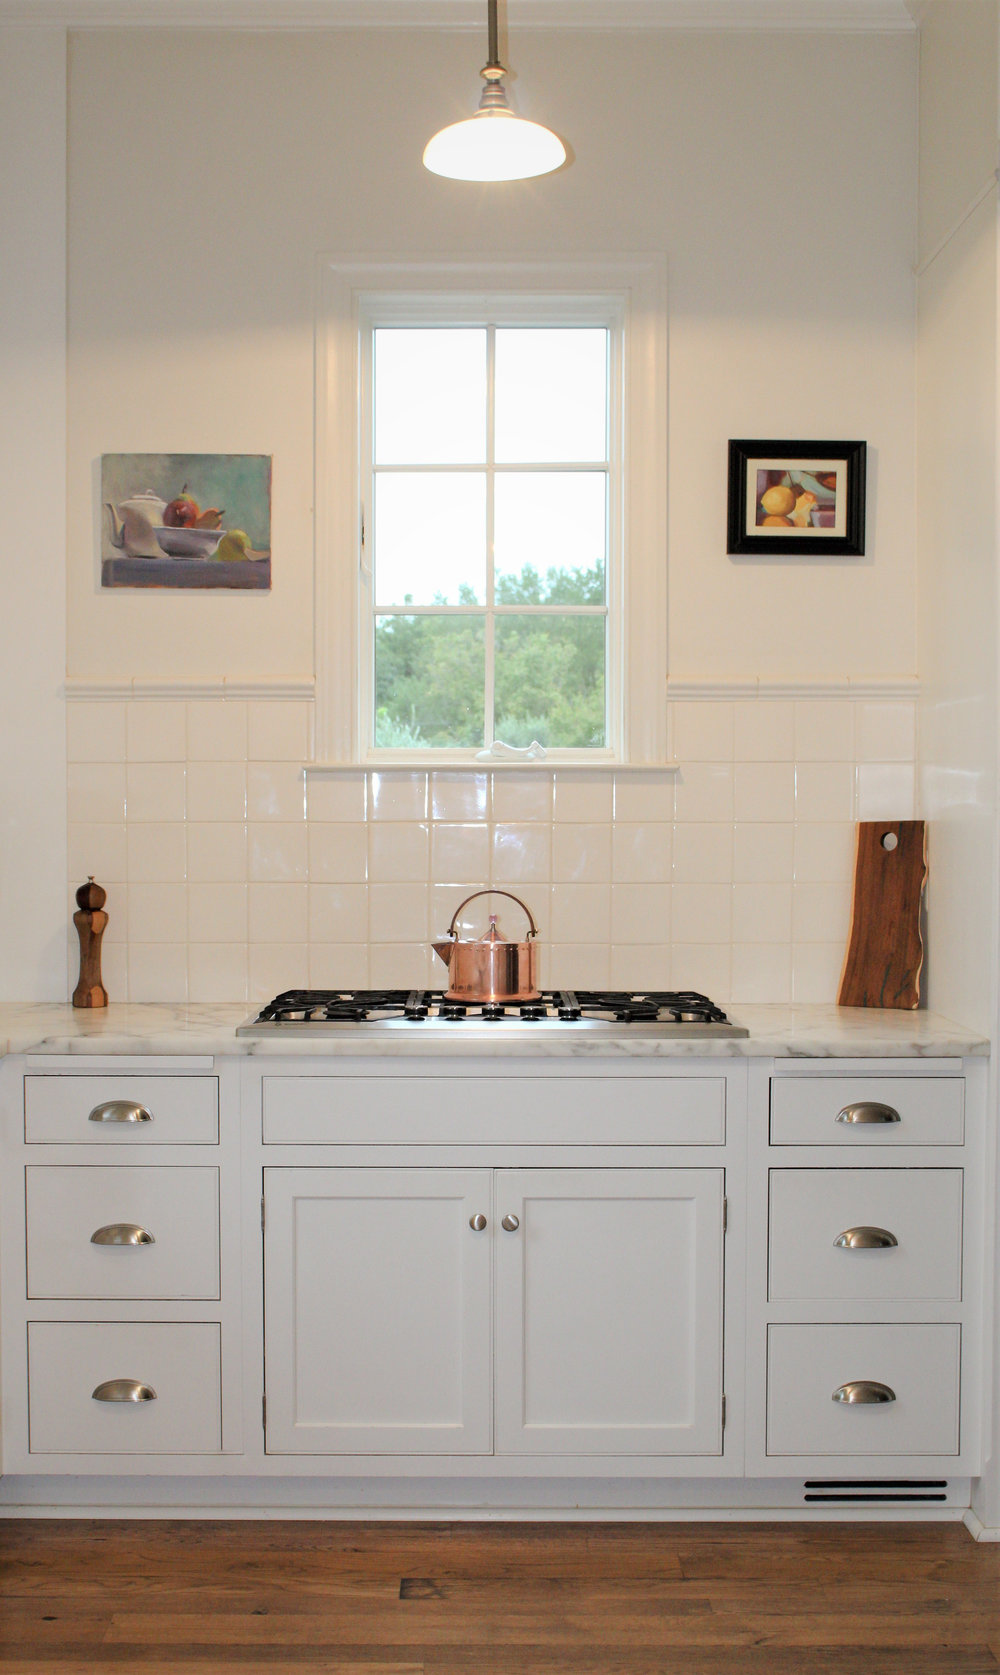 A classic white on white kitchen is warmed up with handmade tiles and reclaimed wood floors. Satin Nickel accessories and Calacatta Caldia countertop, give the kitchen a slightly contemporary feel.